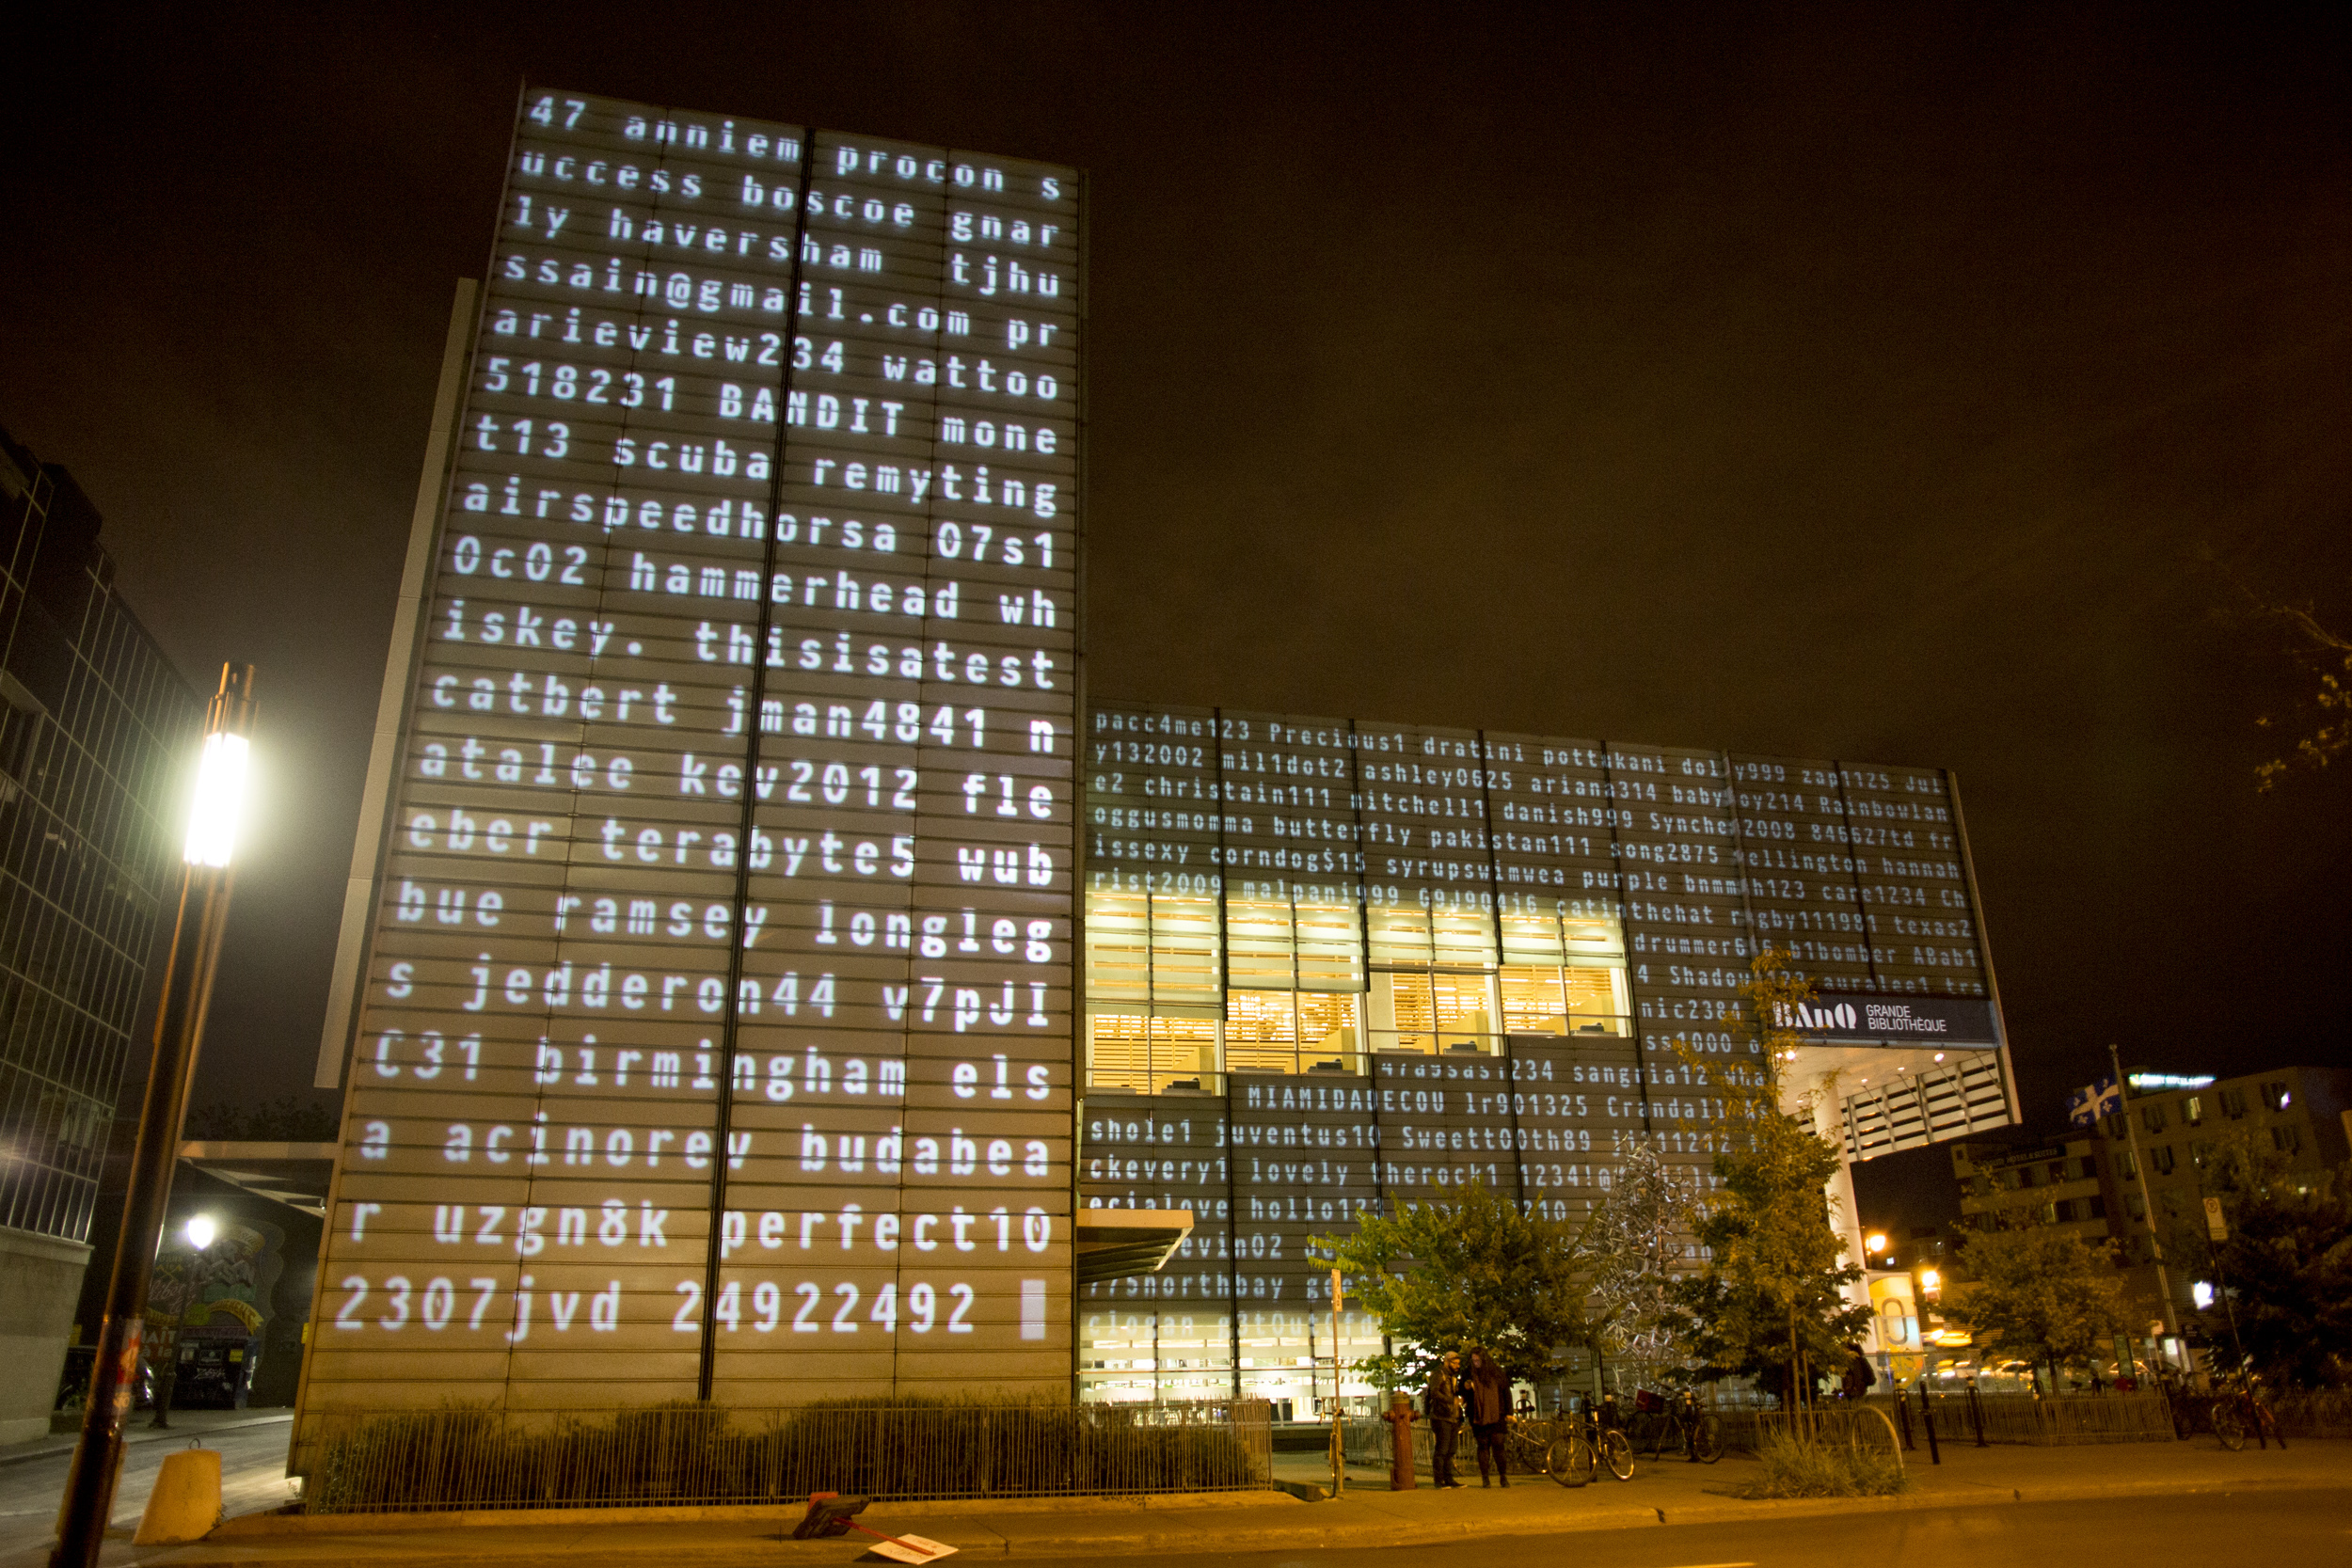 123456-projection-qds-banq-montreal-humanfutures-1